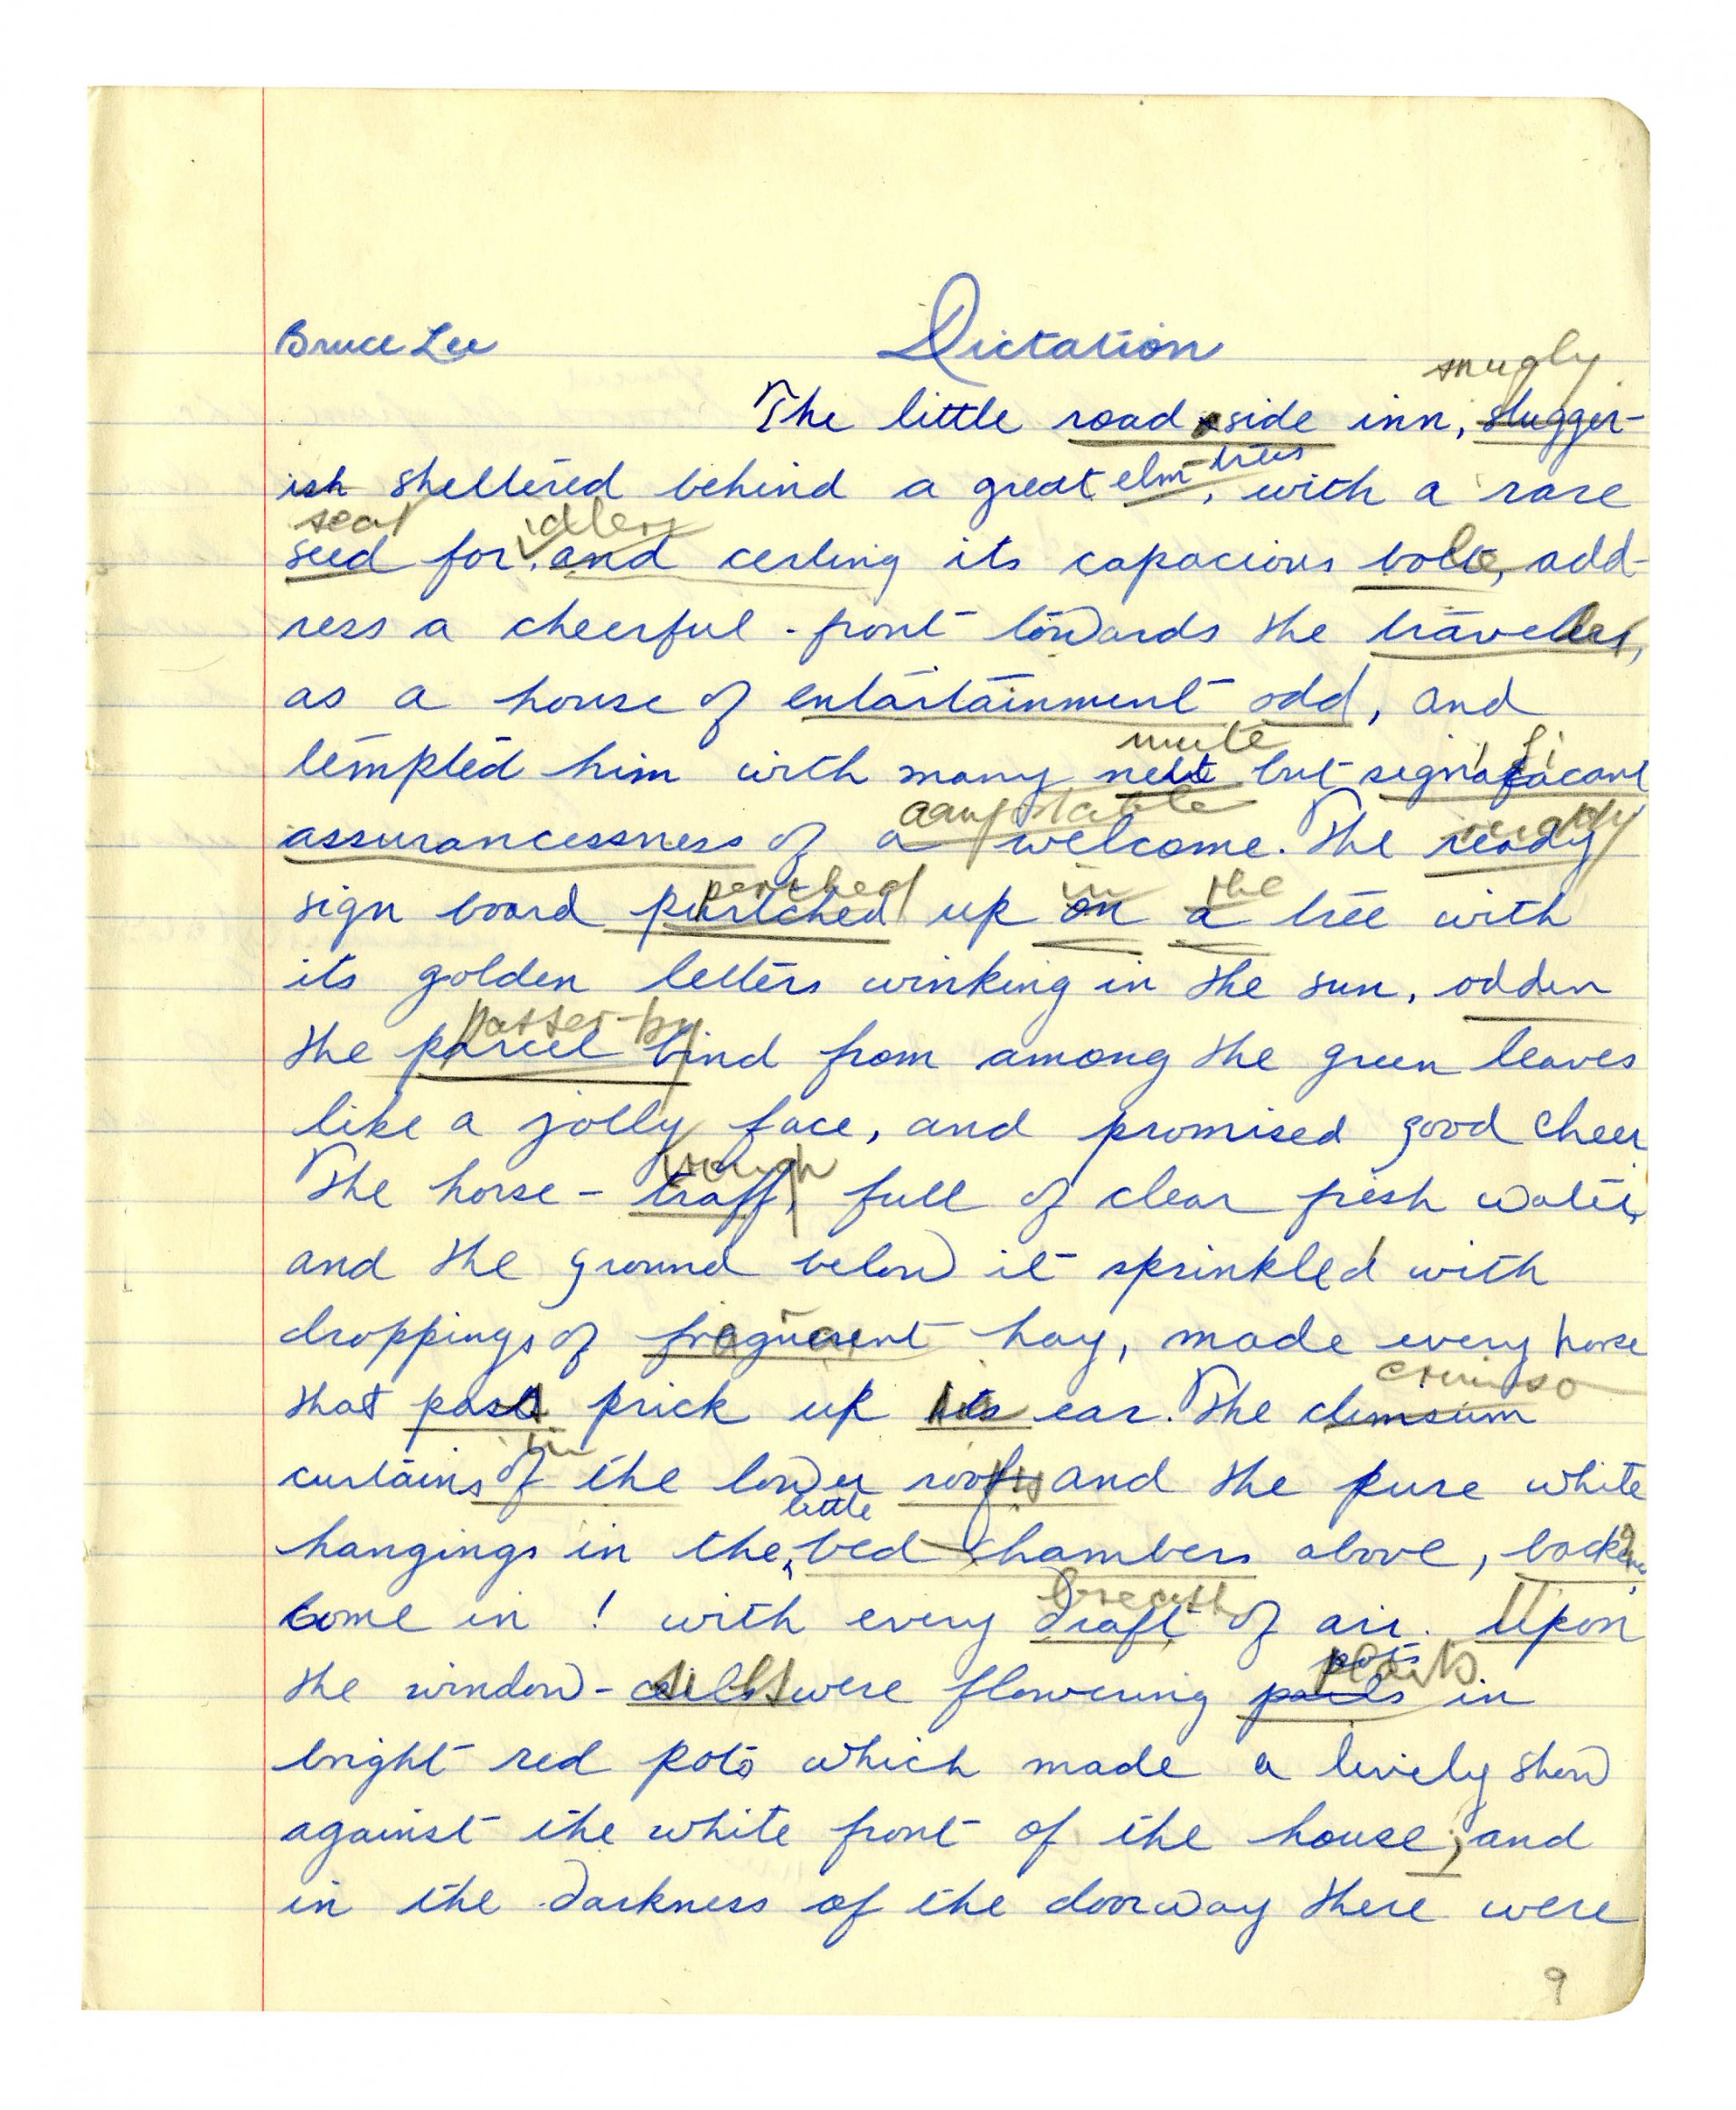 003 Essay On Handwriting Bruce Lee Signed 52850b Lg Fearsome Short Importance Of Good In Hindi Gujarati 1920